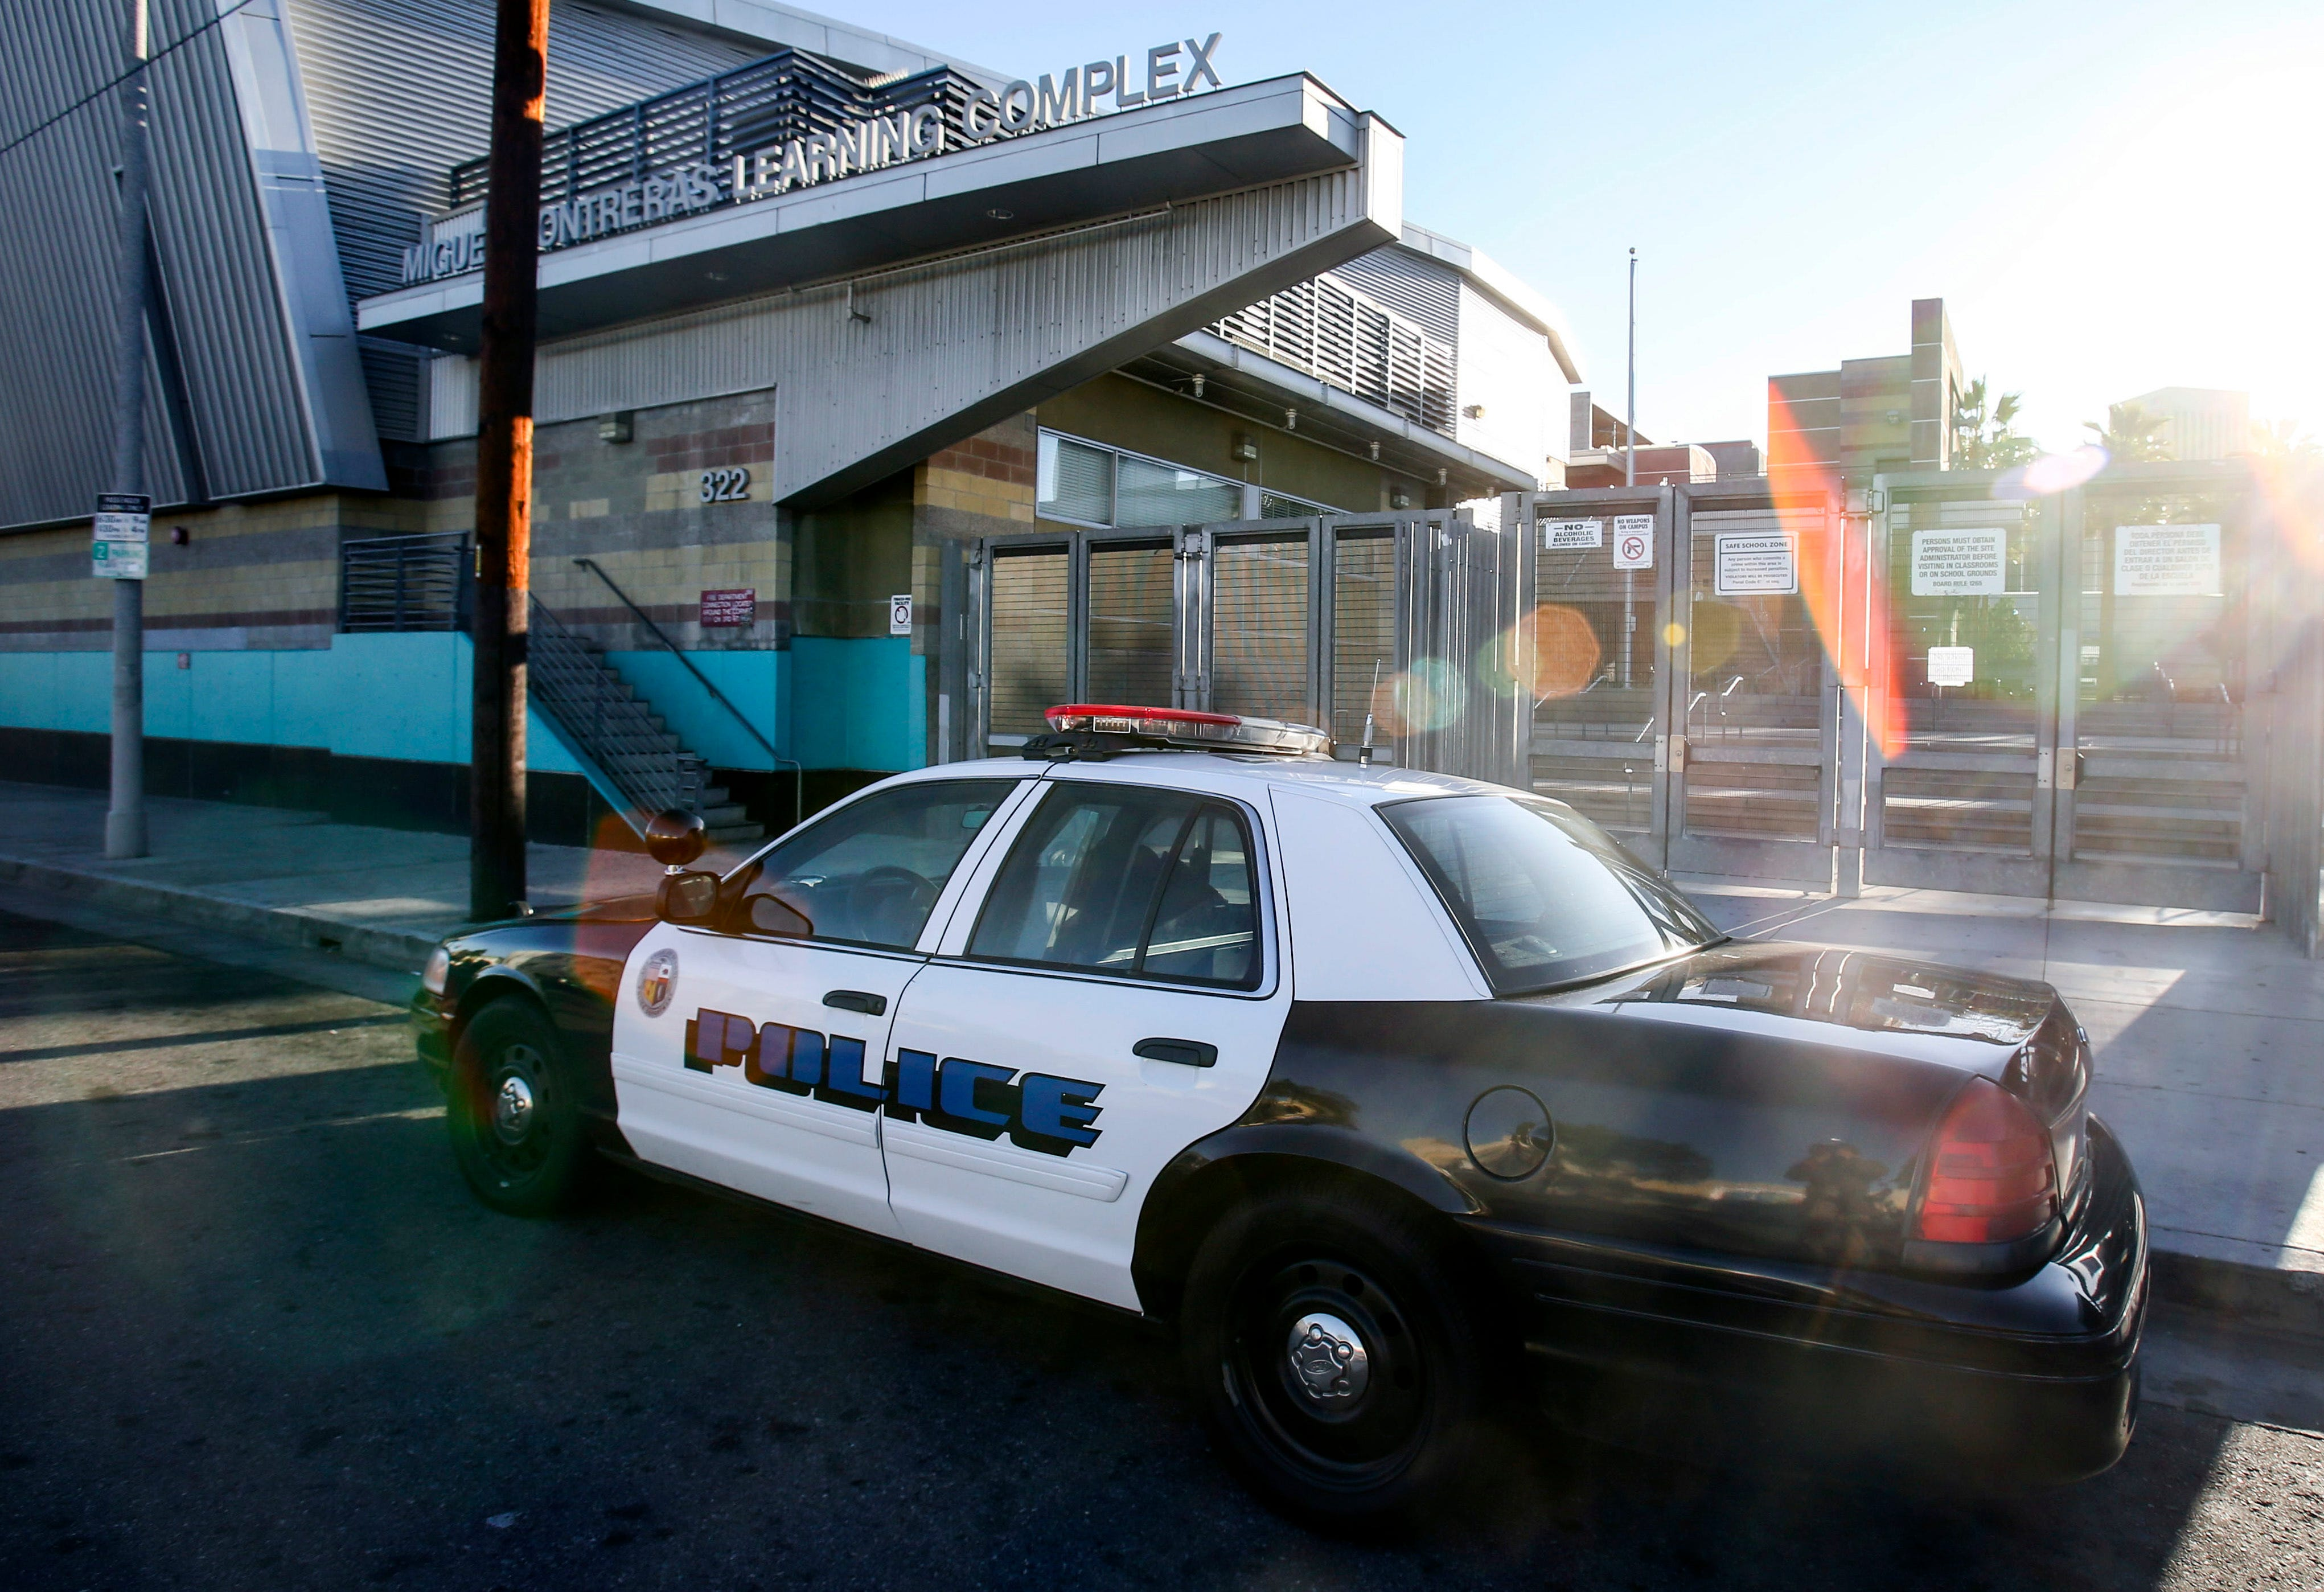 Los Angeles schools cut police funds to boost Black students 2